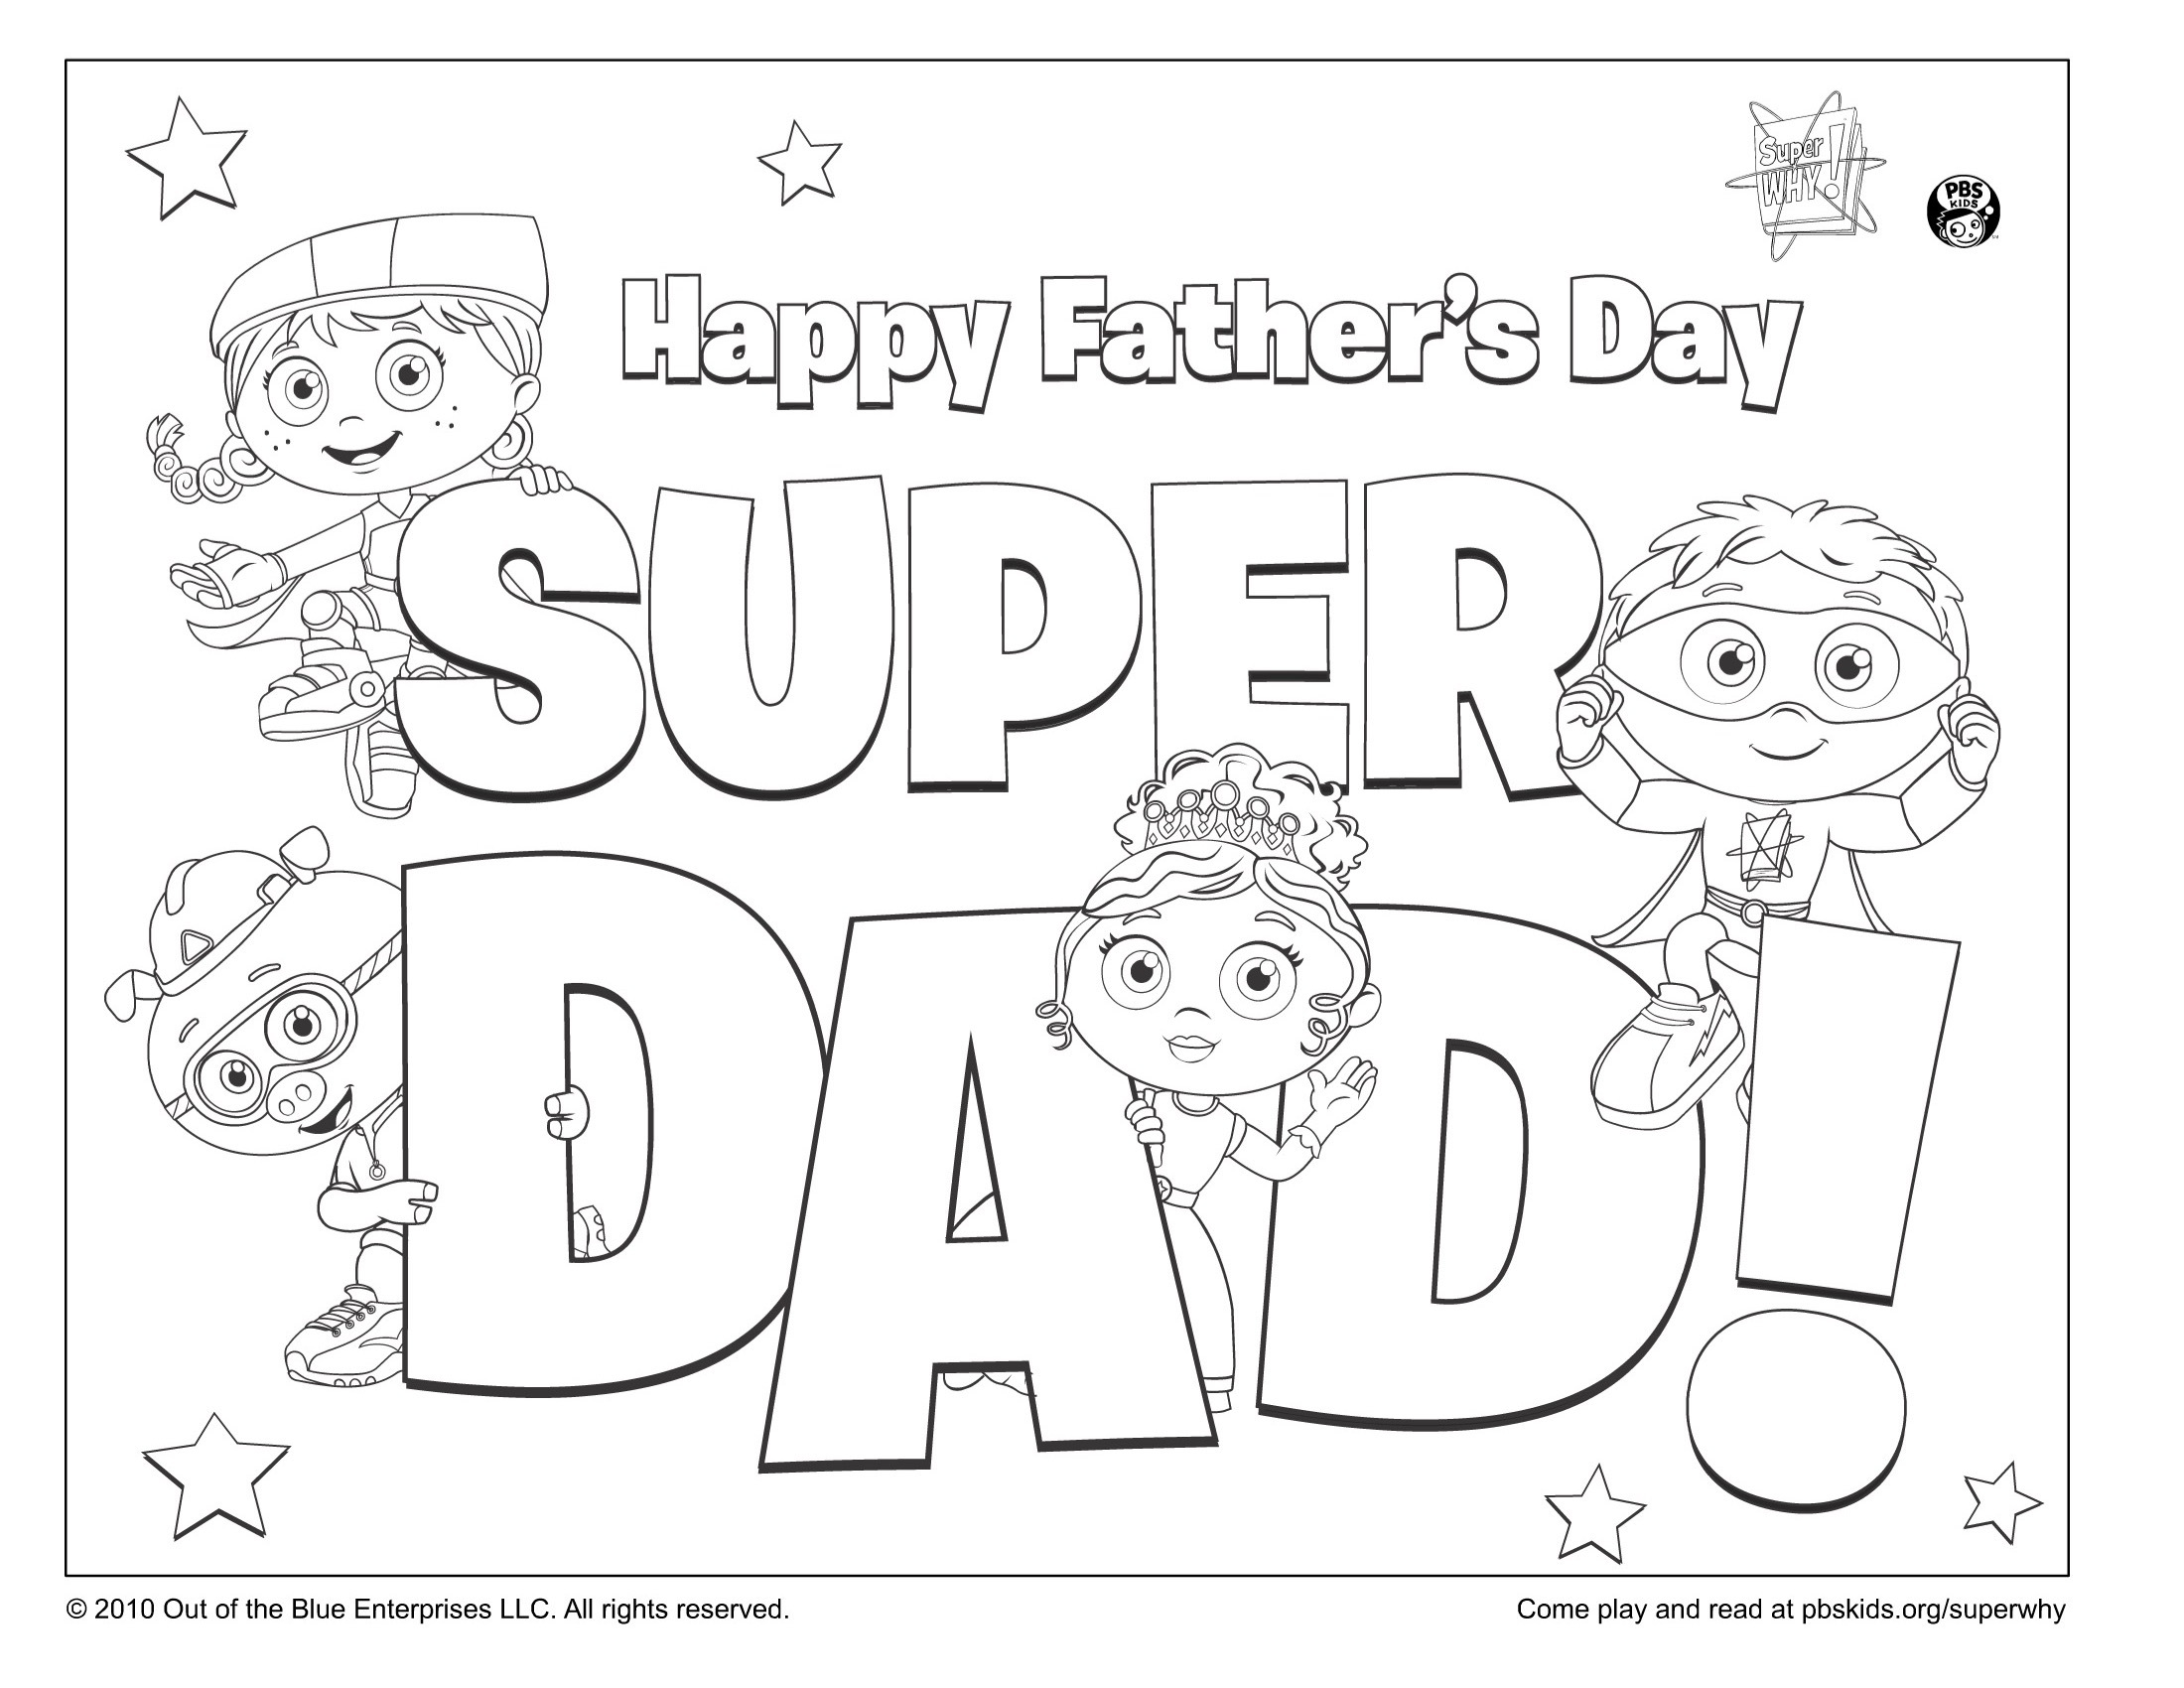 Super Dad! Coloring Page | Kids Coloring Pages | PBS KIDS for Parents